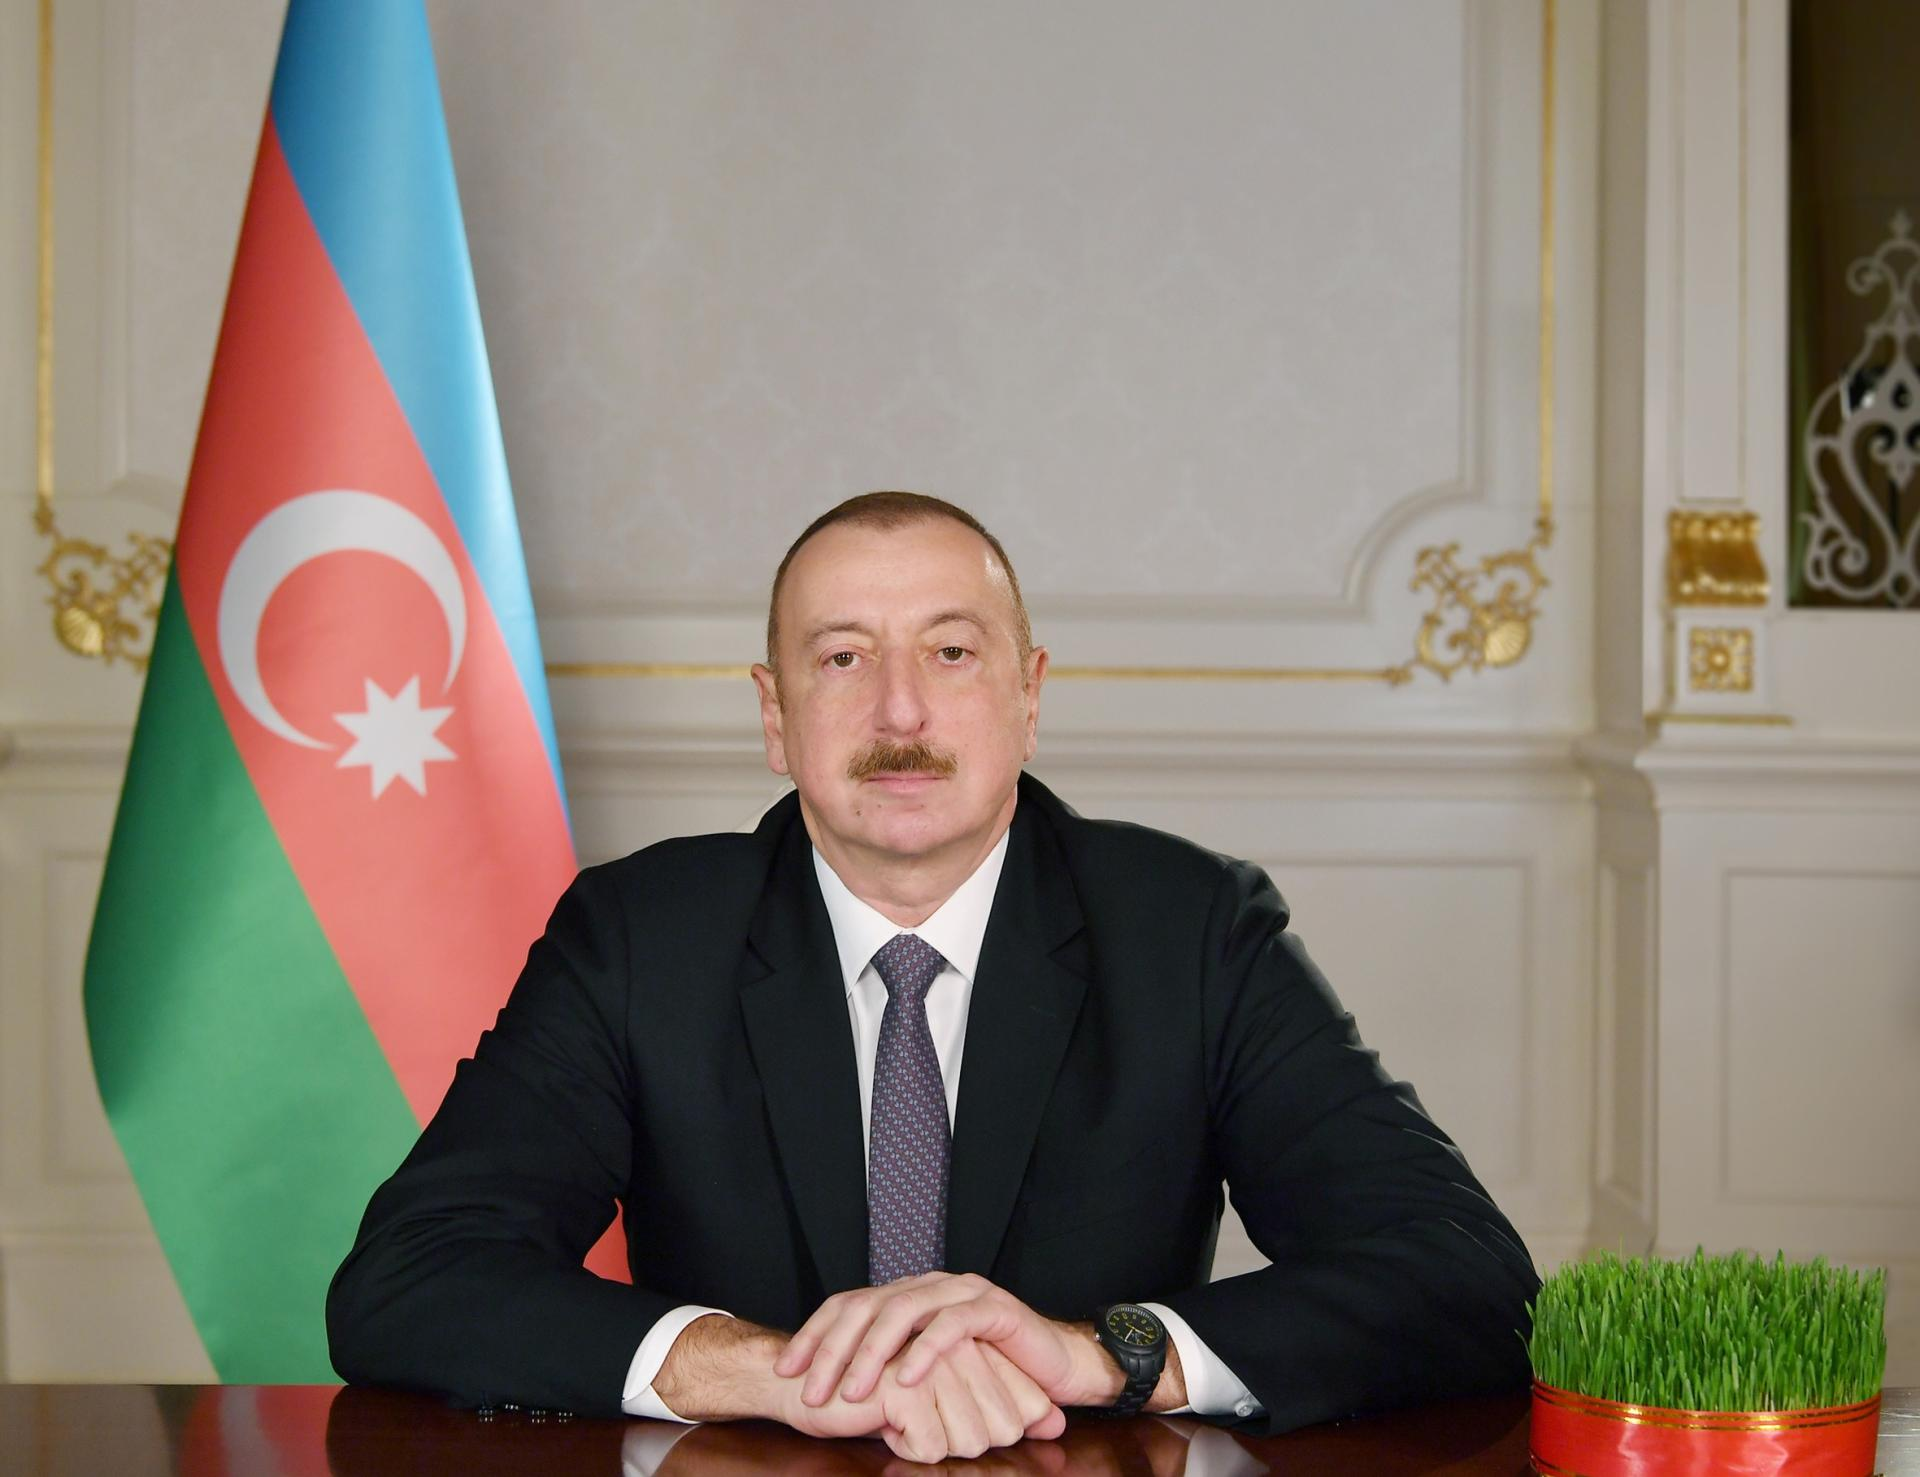 Ilham Aliyev allocates funding construction of road in Gazakh